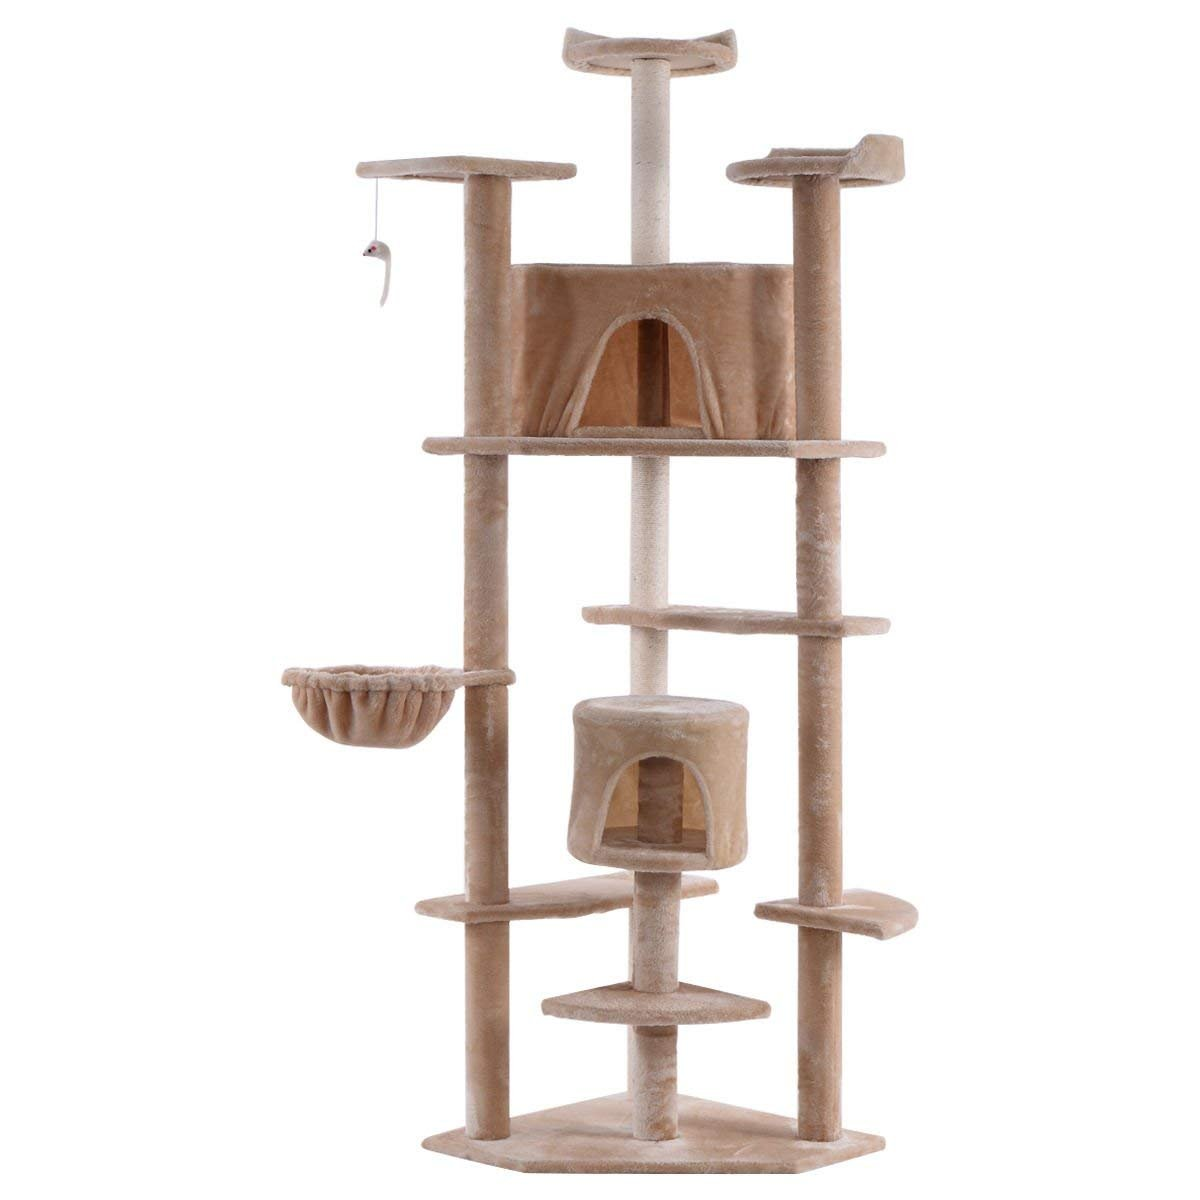 TANGKULA 80'' Cat Tree Condo Multi-Level Activity Tower Furniture Scratch Post Pet Play House Kitty (Beige)